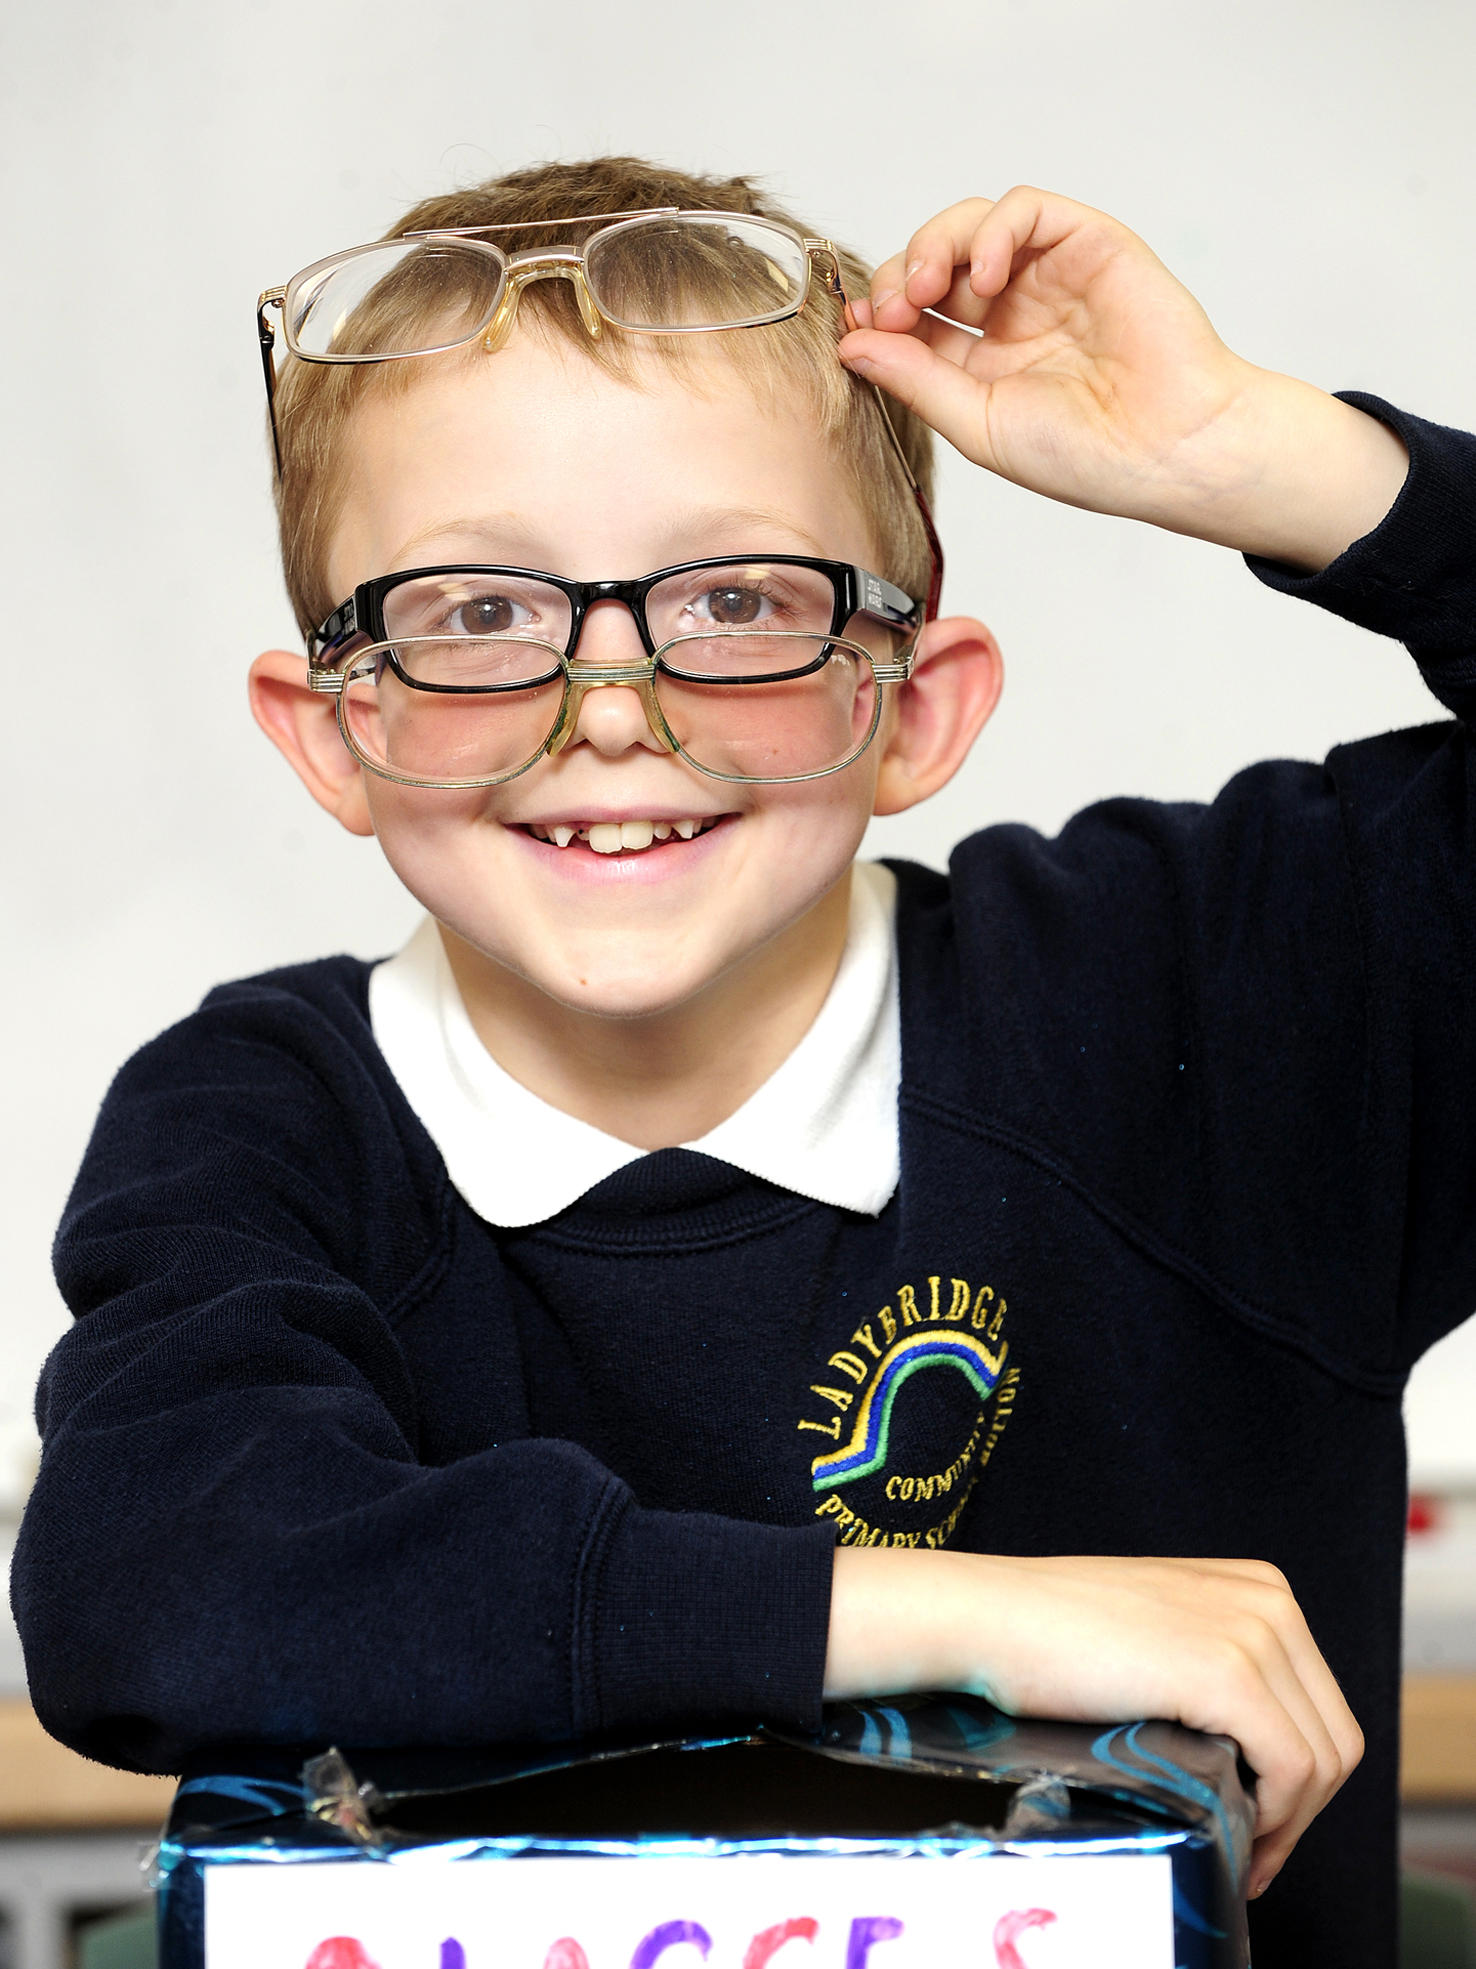 Nine-year-old boy collects glasses after being inspired by Sport Relief